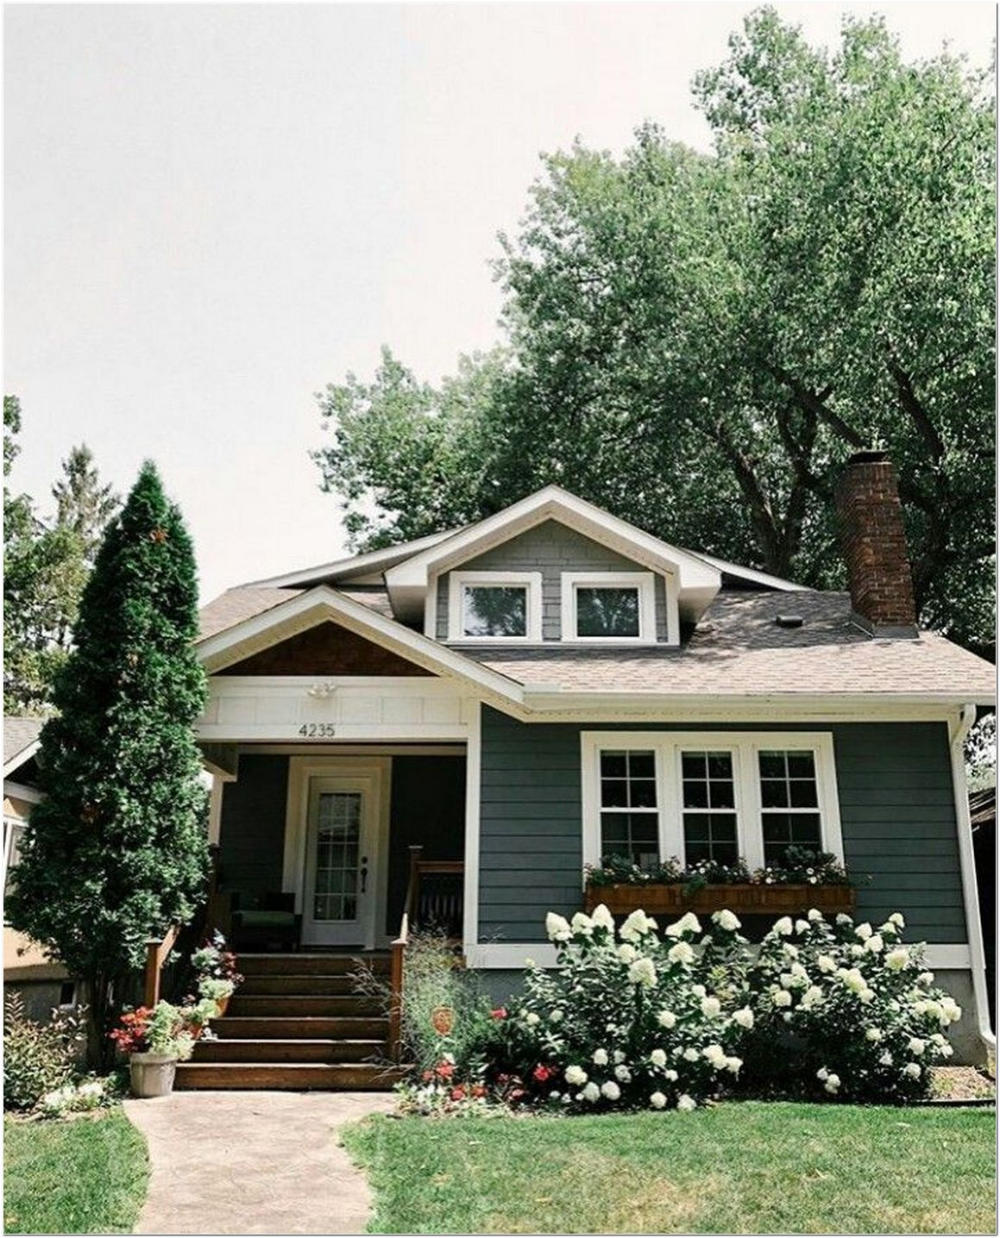 81 Beautiful Farmhouse Exterior Designs To Match In Any House Themes 21 In 2020 Tiny House Plans Small Cottages Best Tiny House House Exterior